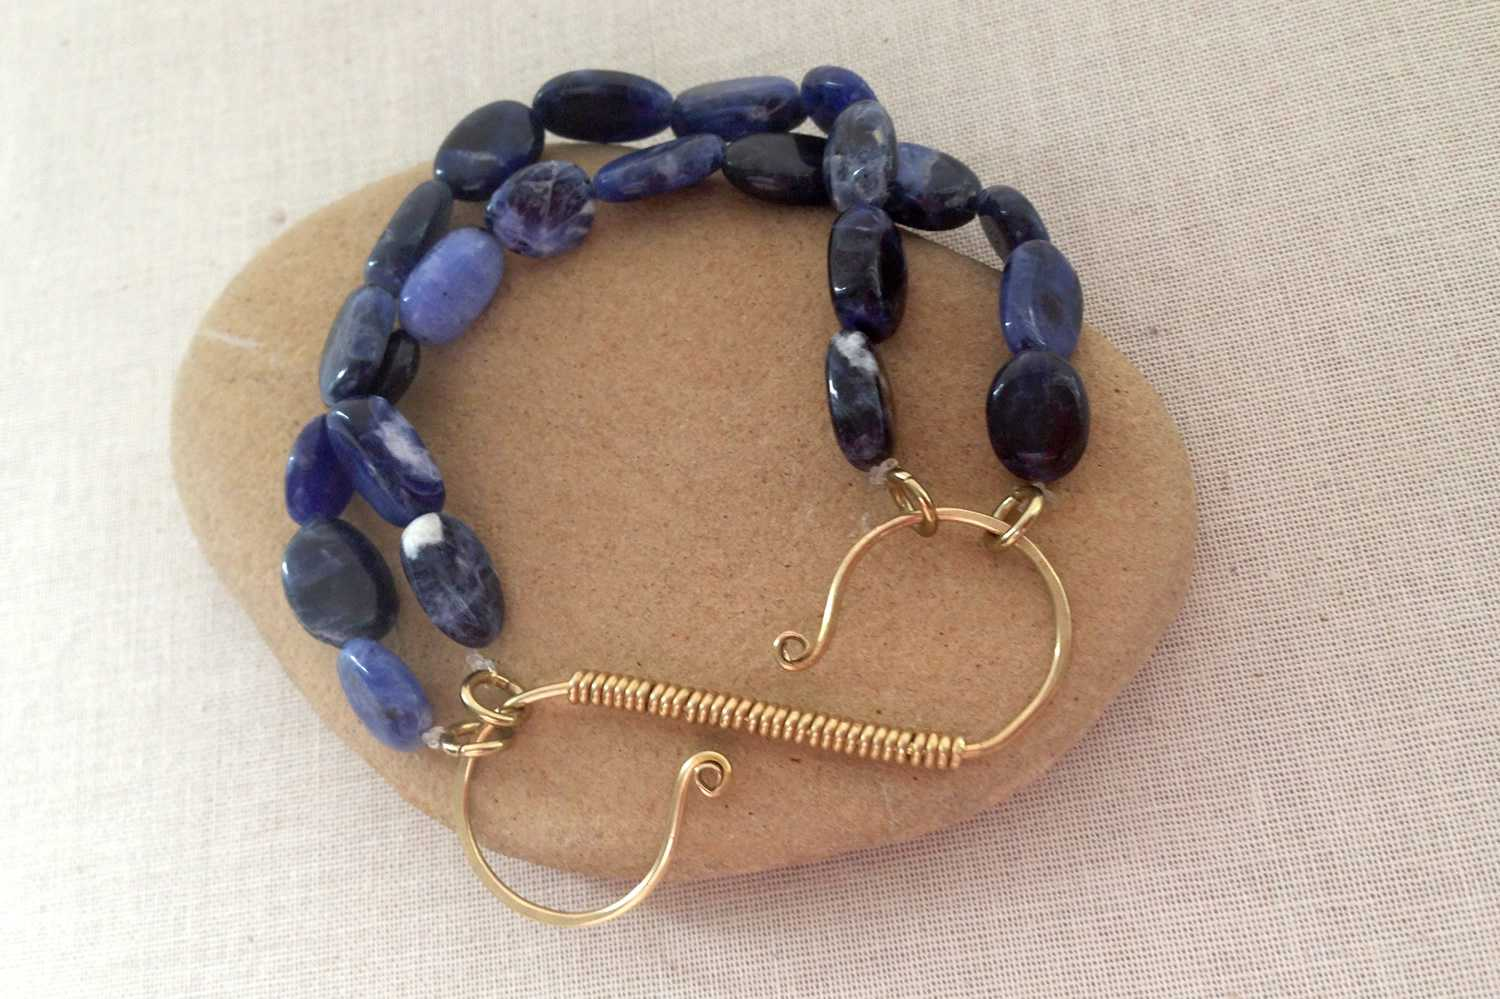 How To Make Stretch Bracelets That Don